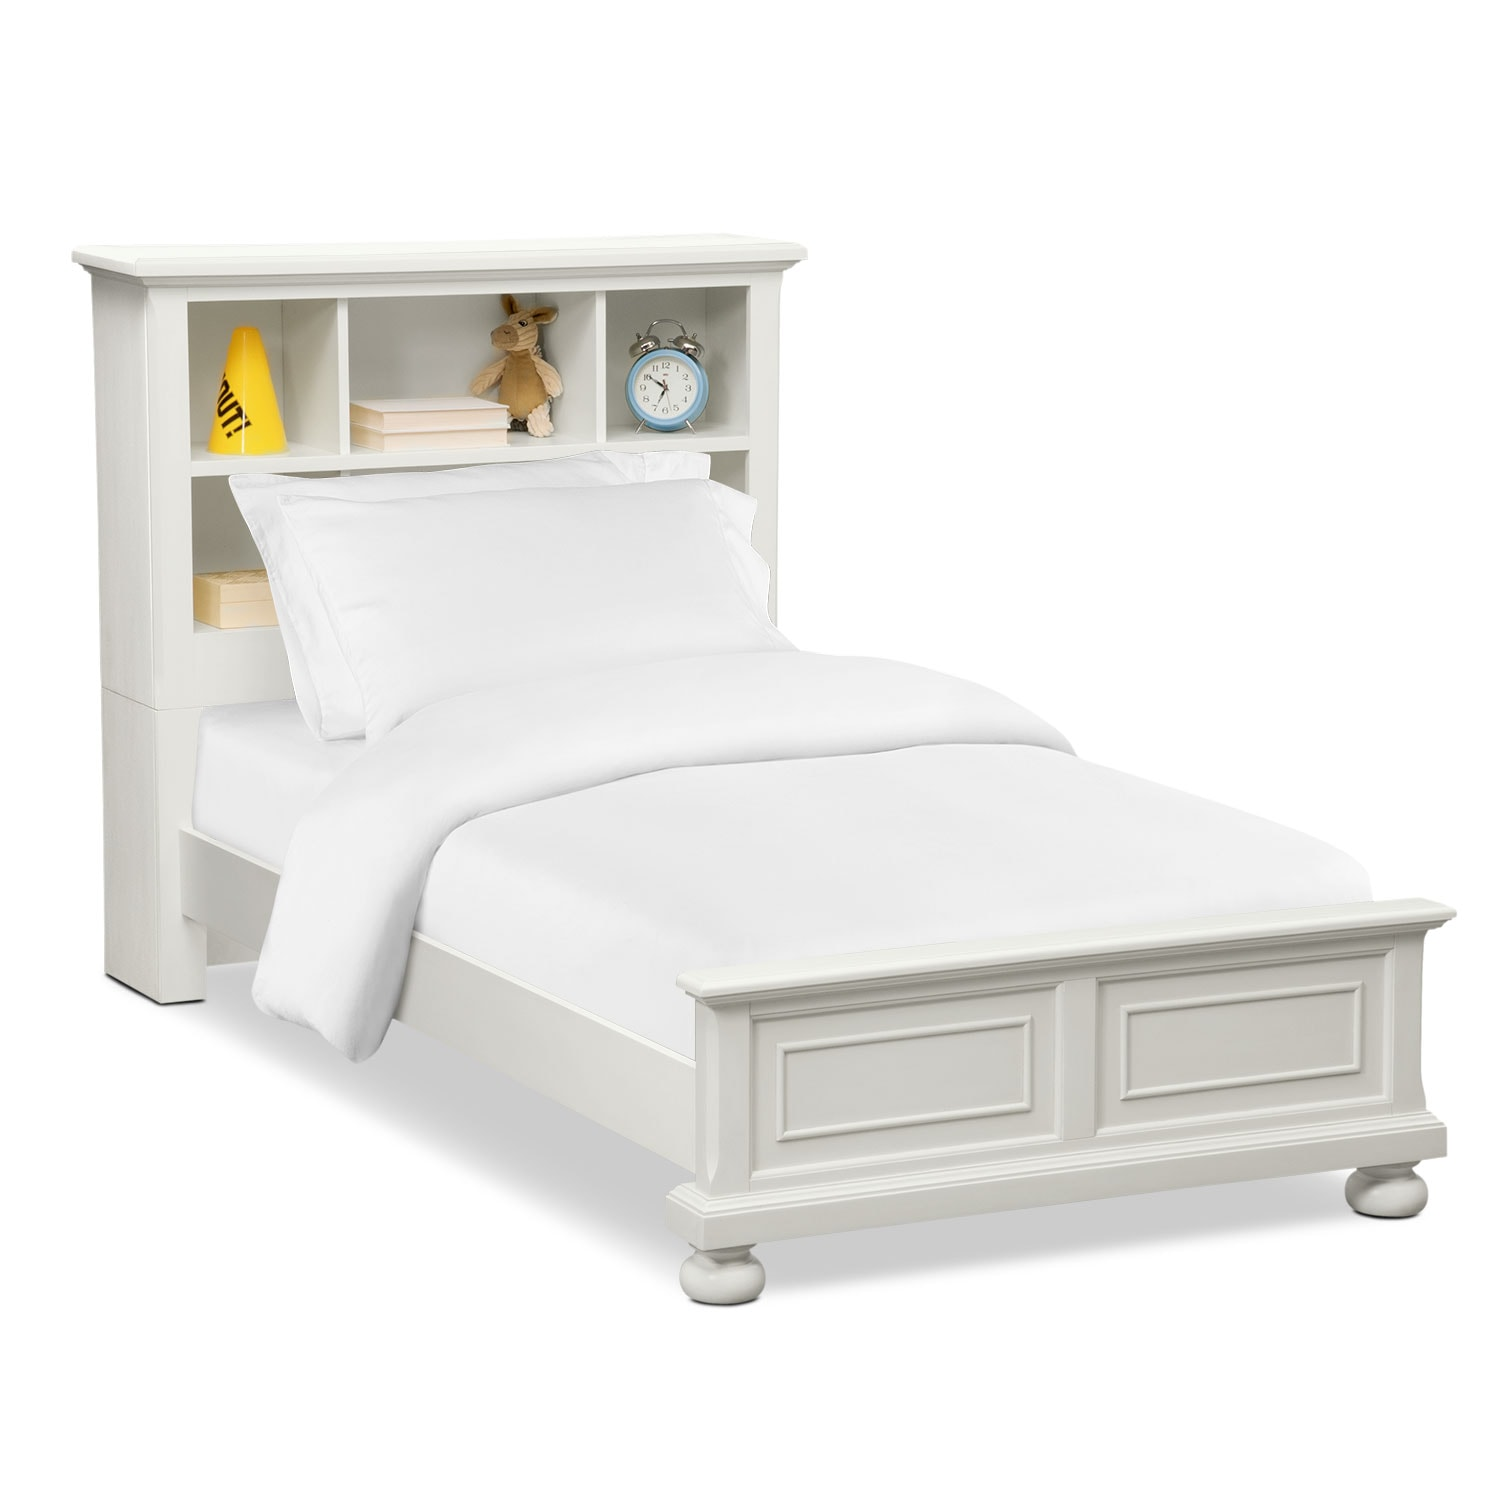 Hanover Youth Full Bookcase Bed - White | Value City Furniture and ...